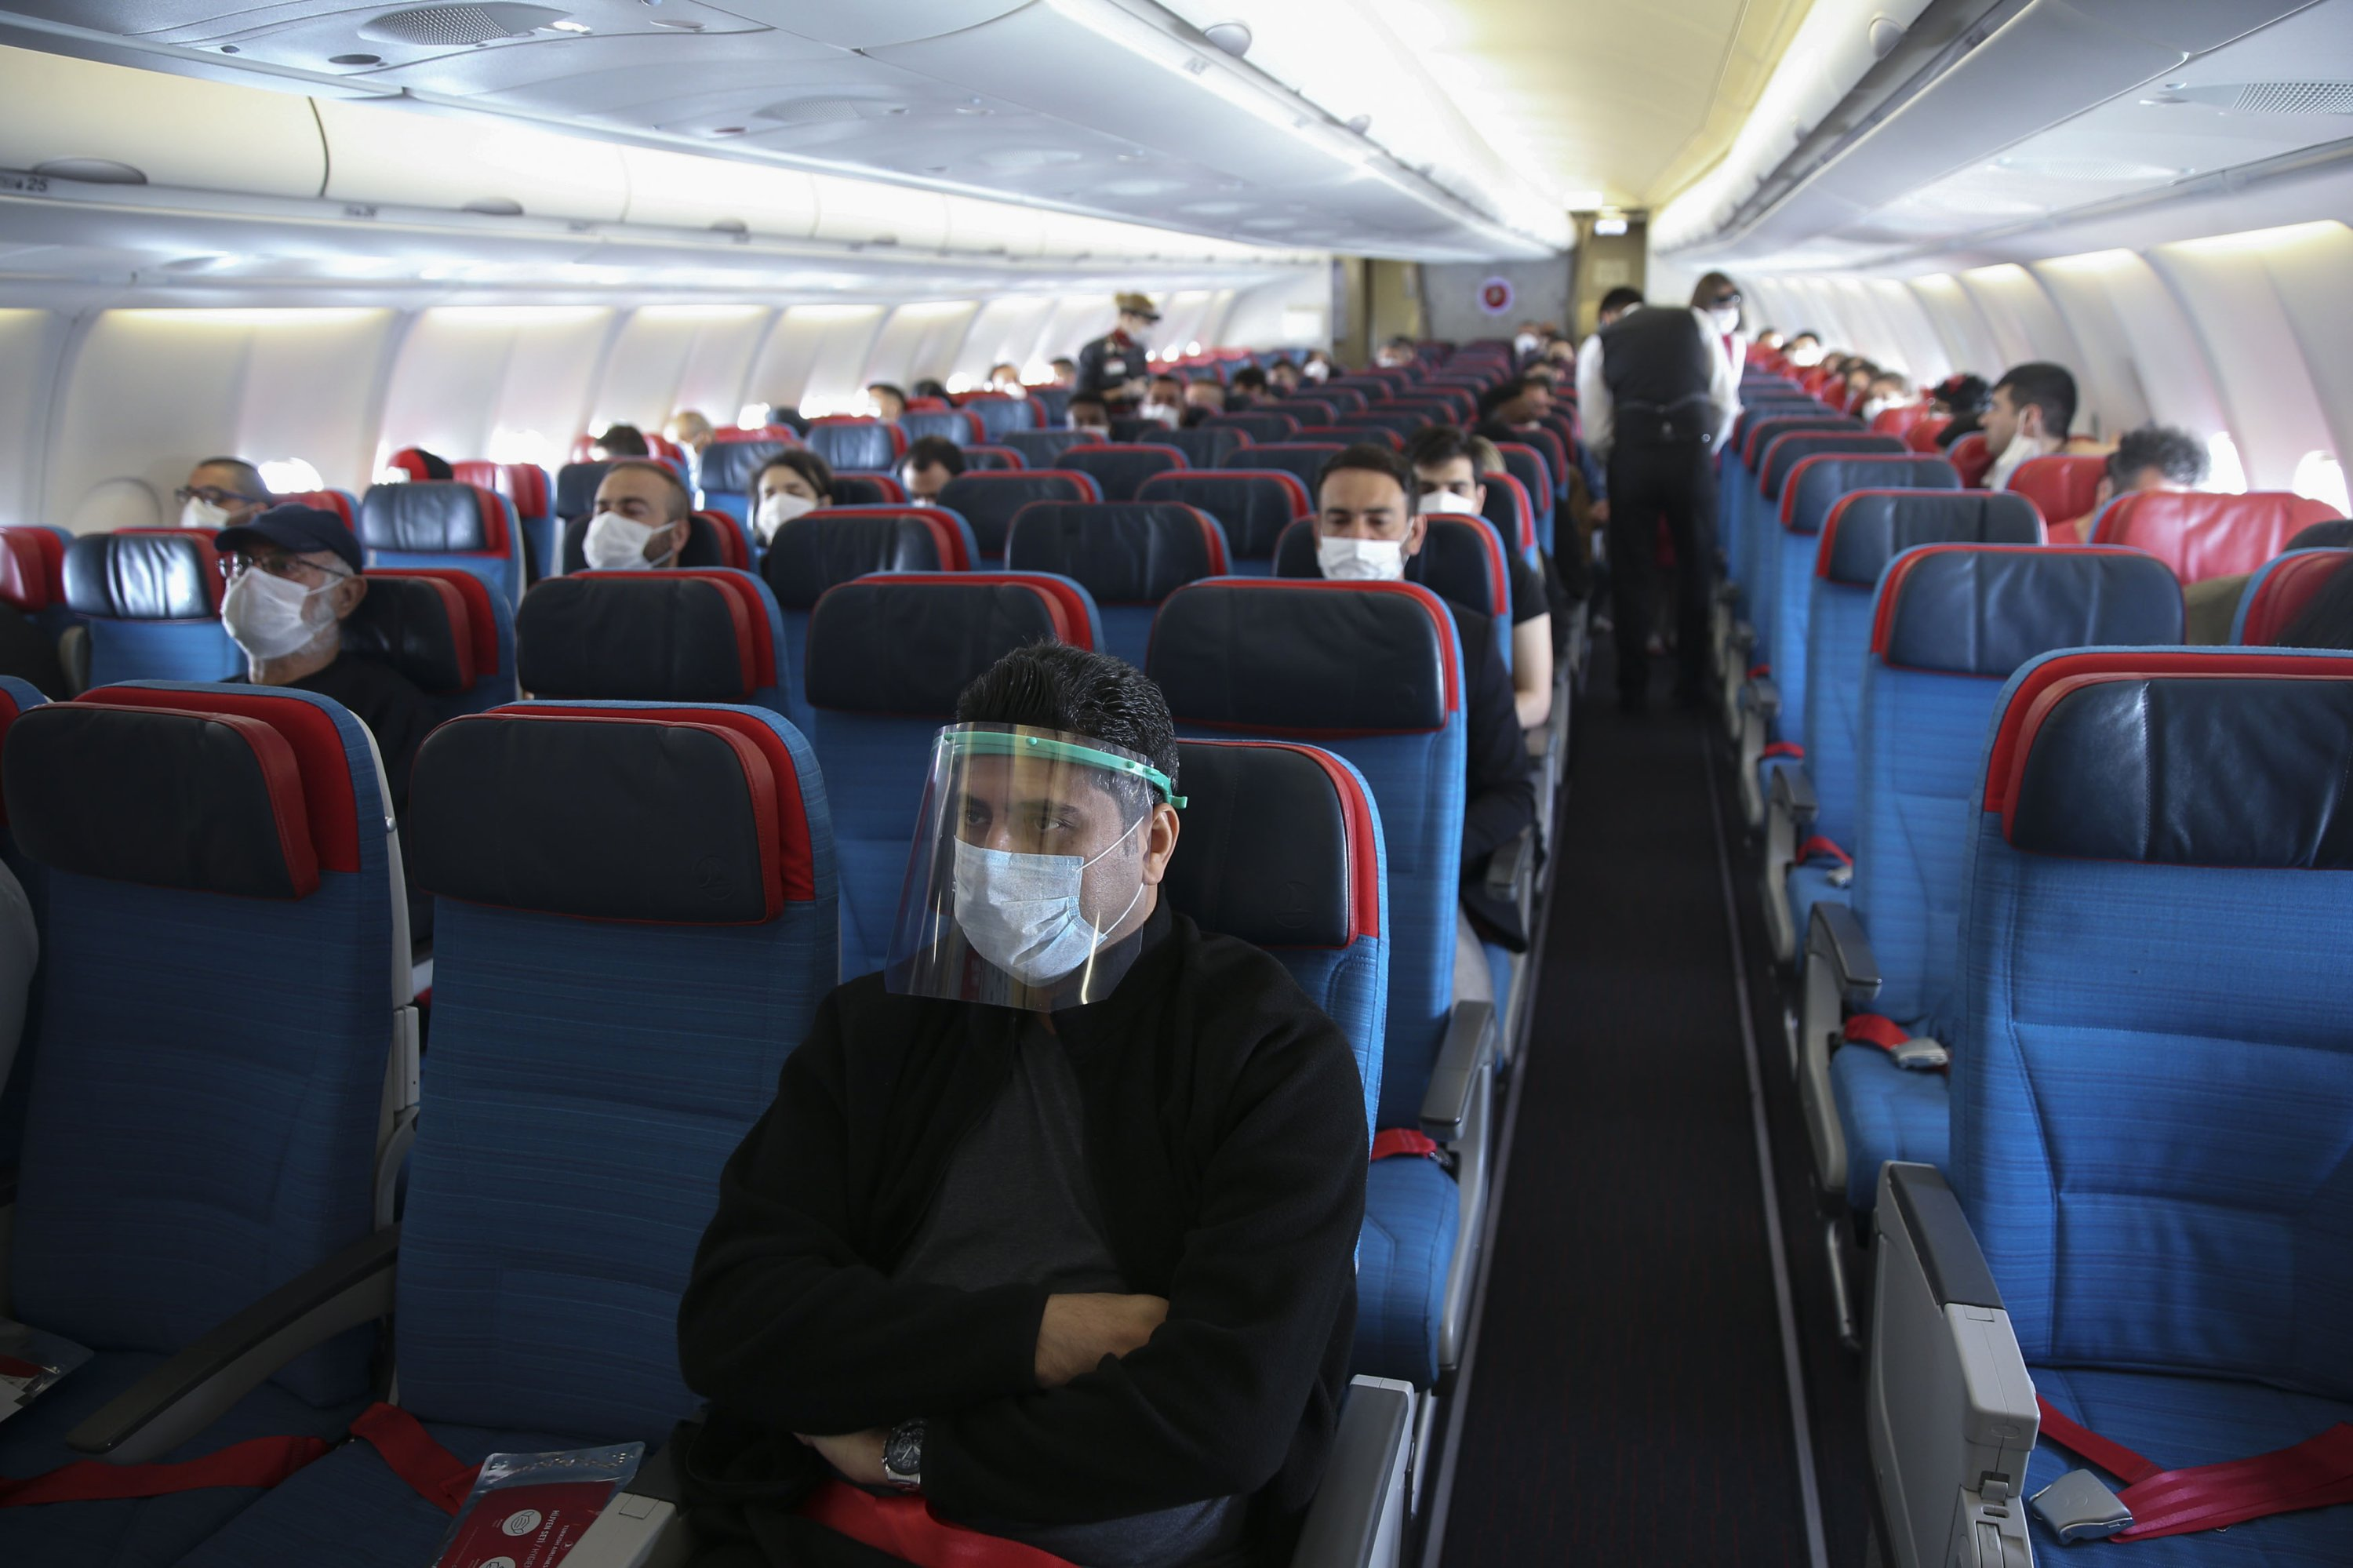 Flying home in a pandemic